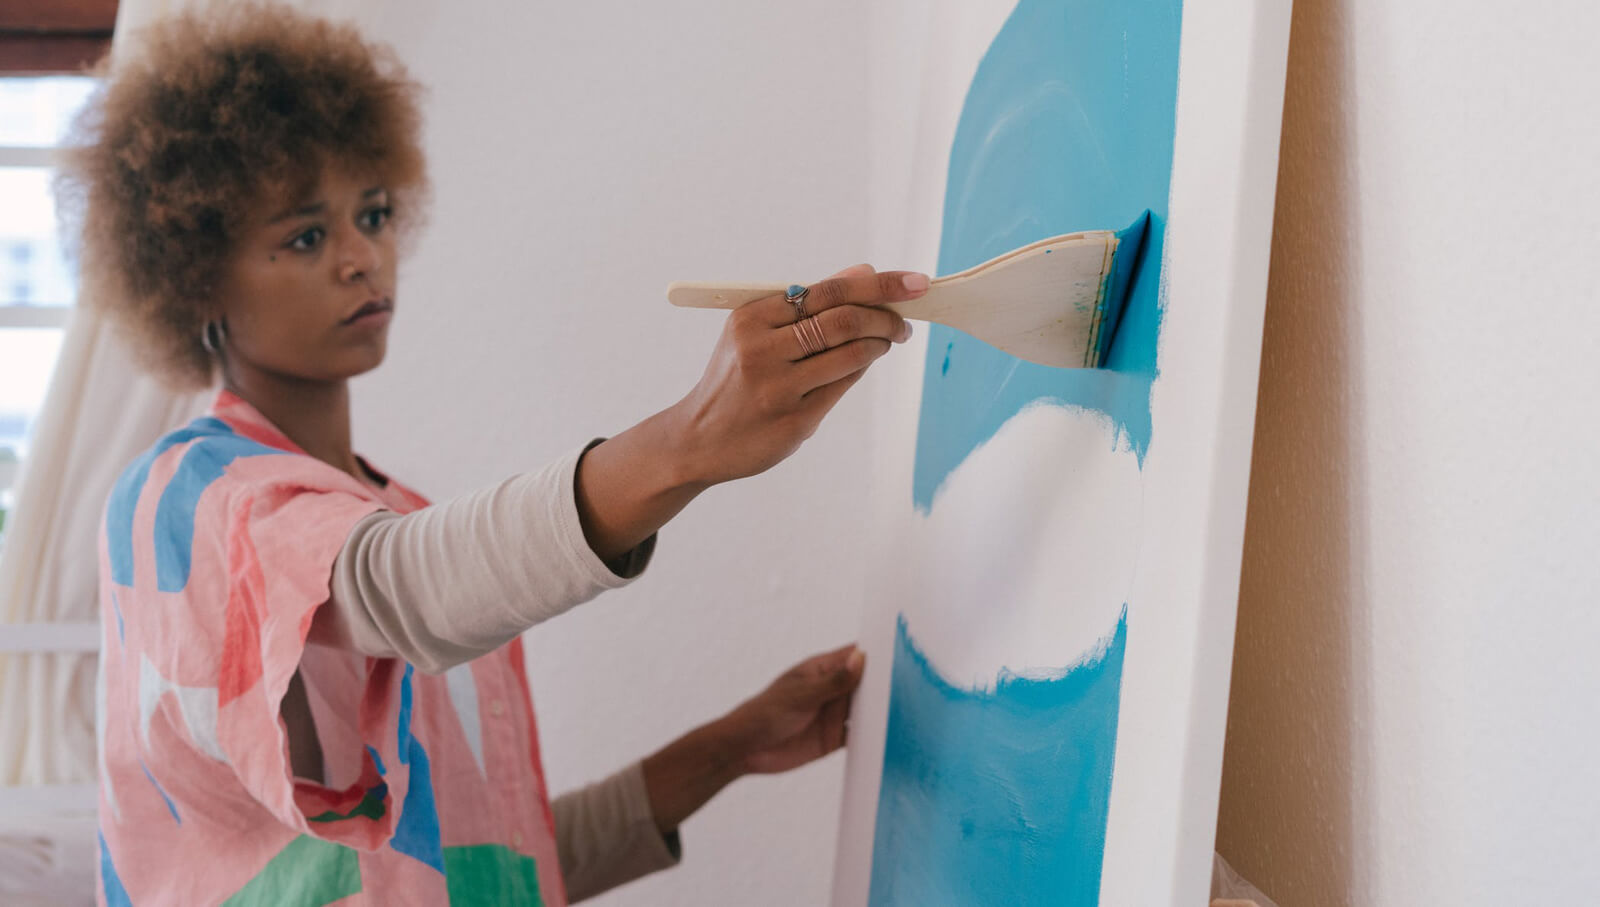 Kidsartify artist painting wholesale dropshipping policy